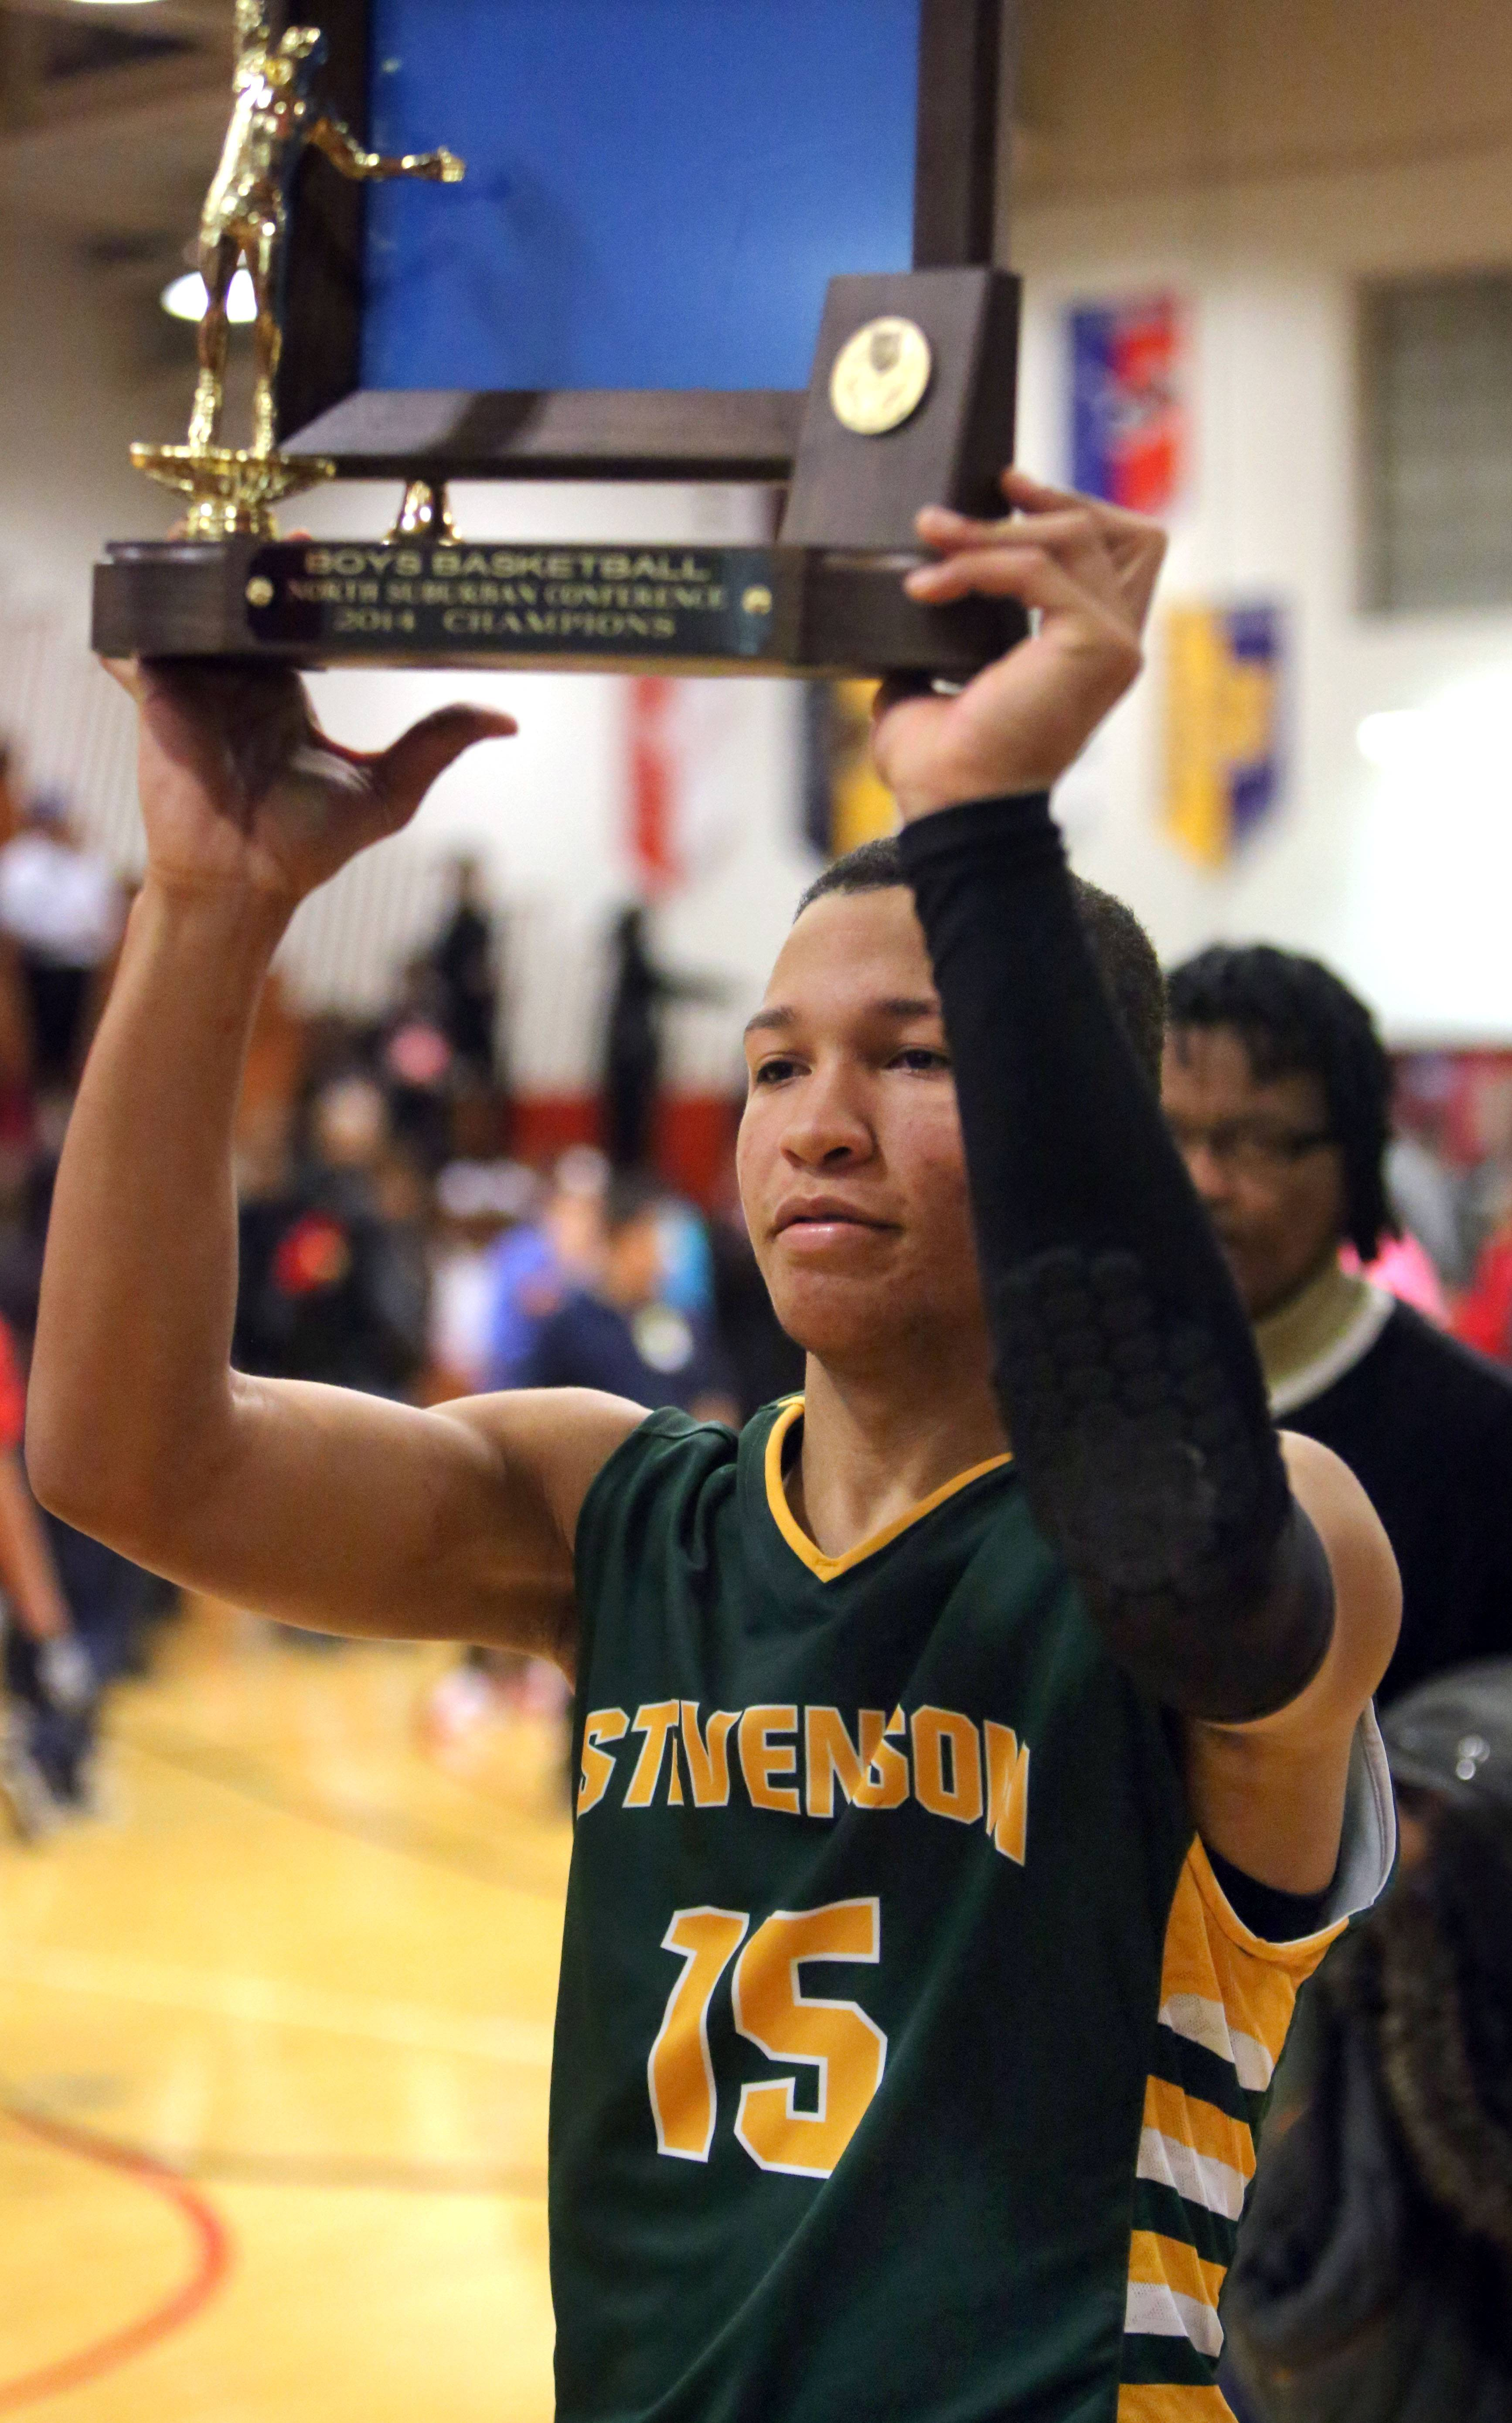 Stevenson's Jalen Brunson hoists the North Suburban Conference trophy after the Patriots' win over North Chicago. Brunson, who captains the Daily Herald's all-area team for Lake County, are hoping for more postseason hardware.